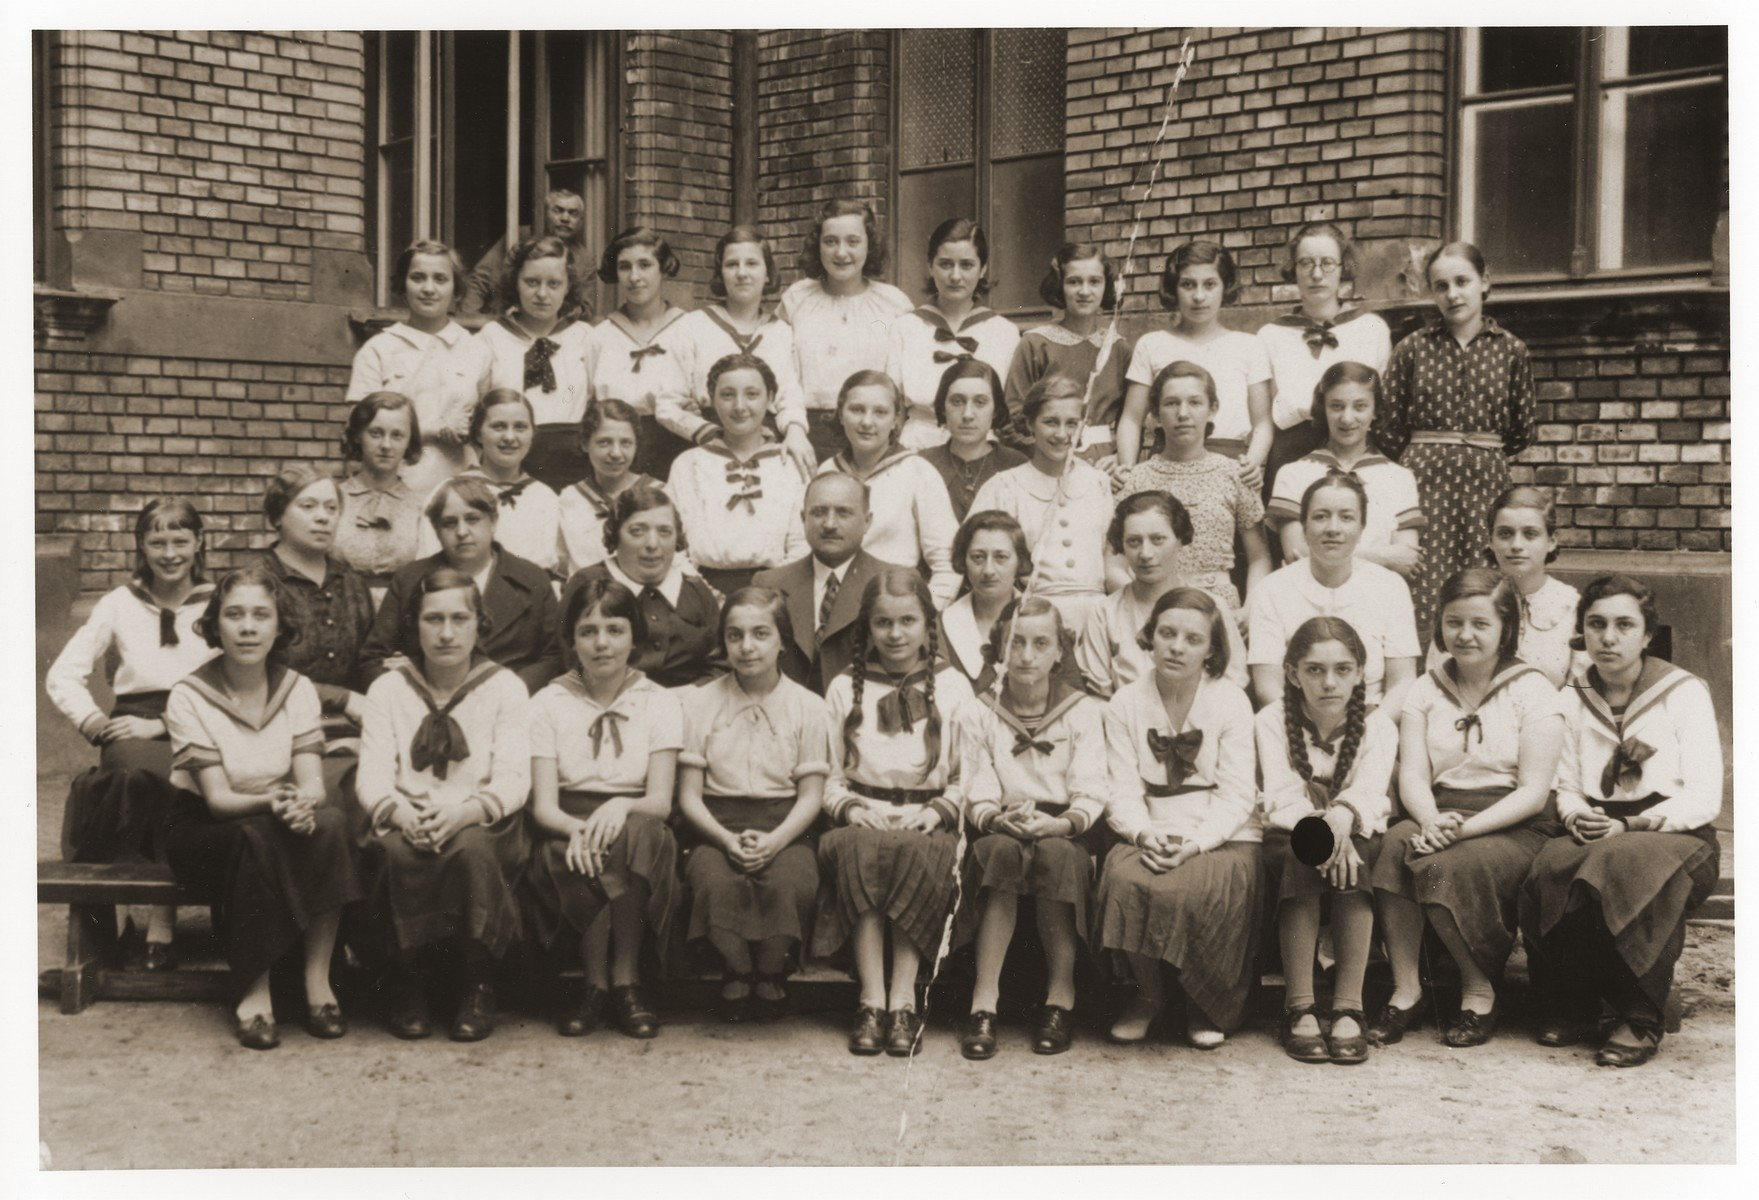 School portrait of the fourth form class (8th grade) at the Dohany Street girls school, a public school that was attended predominantly by Jews.  Pictured in the front row, third from the left, is Olga Gelb, the donor's mother (b.1922).